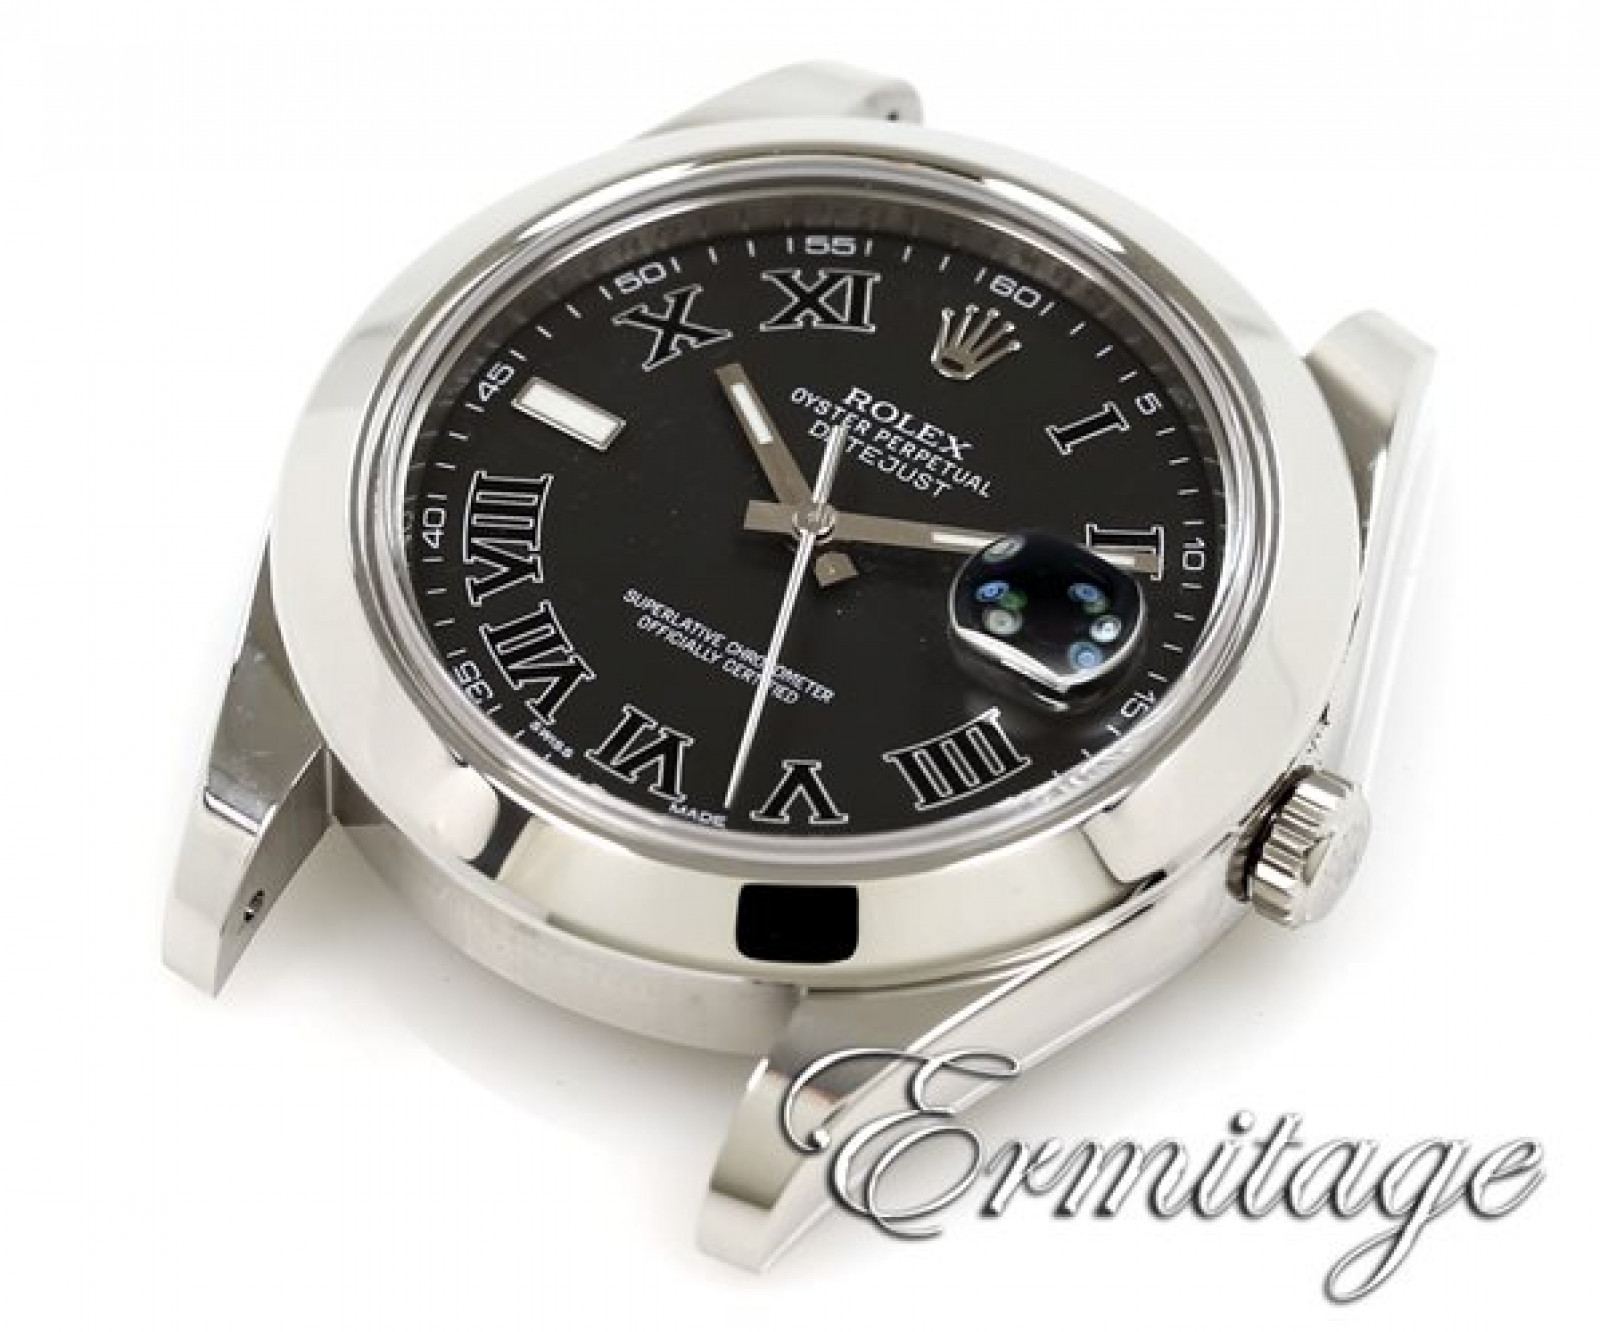 Rolex Datejust II 116300 Steel with Black Dial & Roman Markers